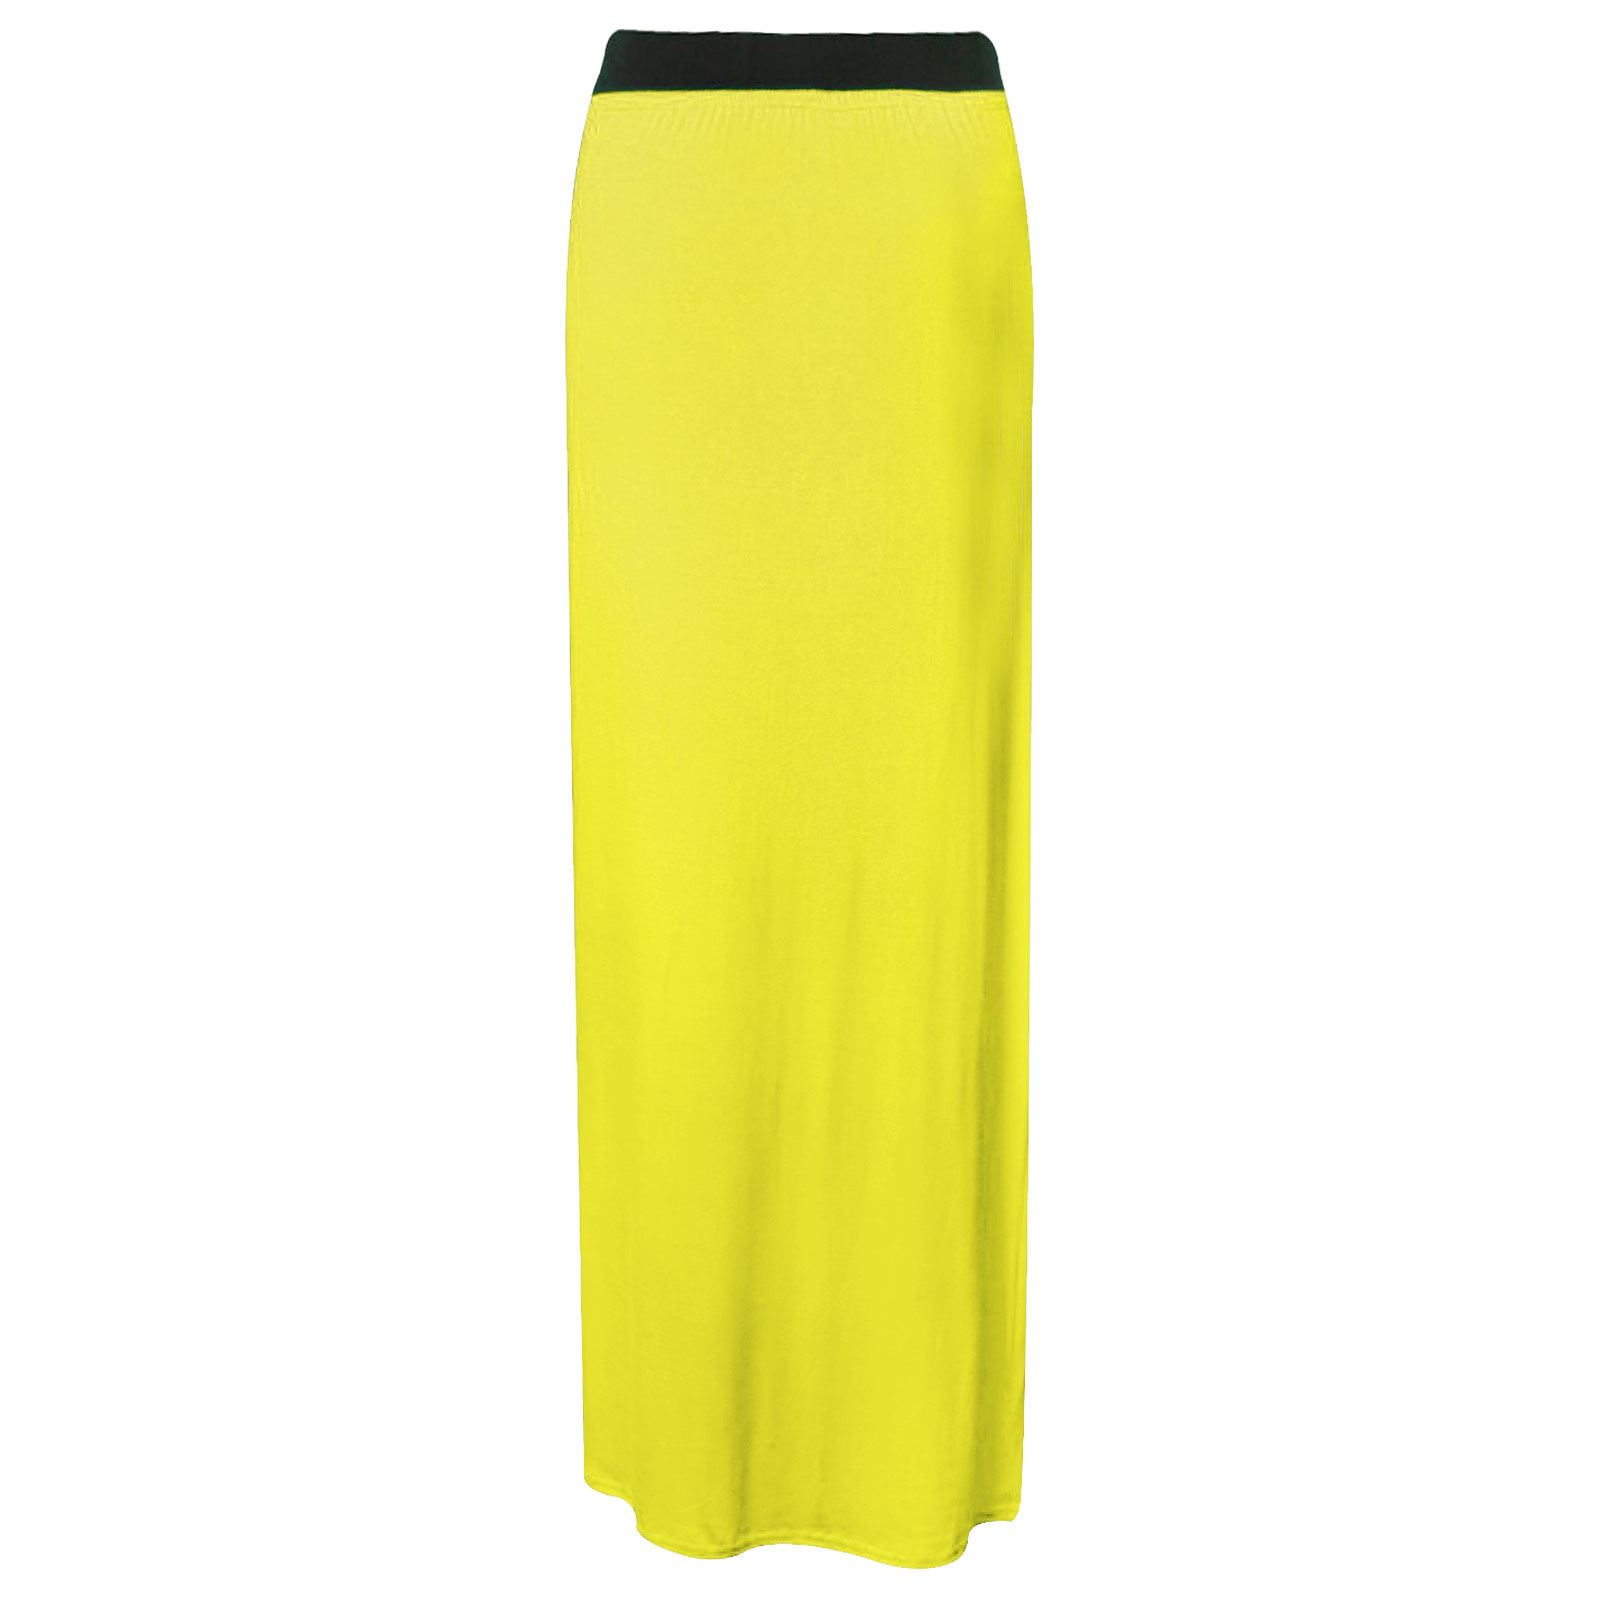 NEW-LONG-LADIES-WOMENS-JERSEY-MAXI-SKIRT-GYPSY-BODYCON-SUMMER-DRESS-SIZE-8-26